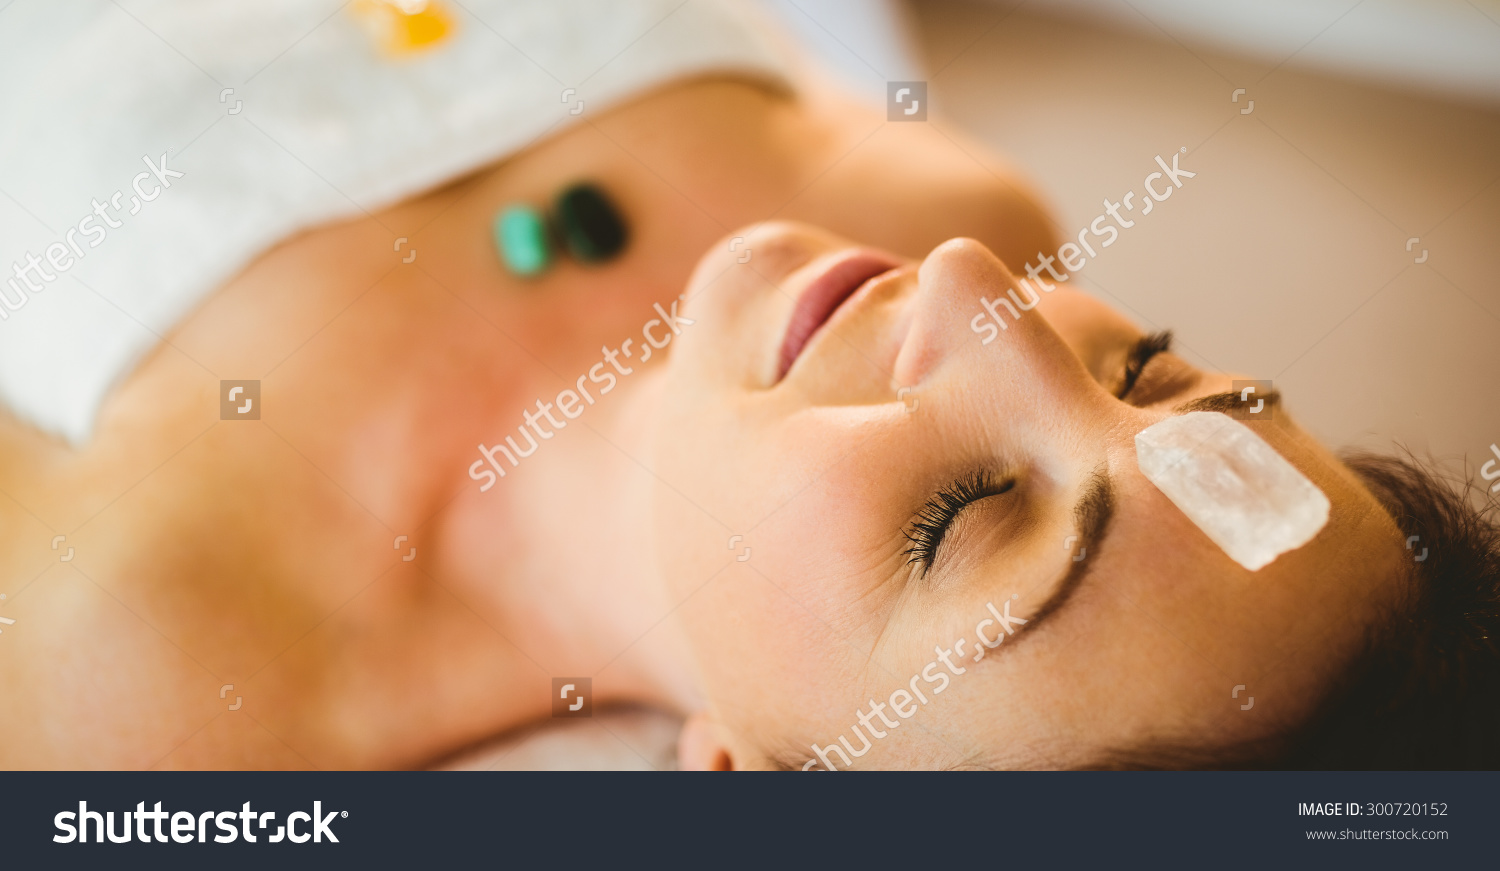 stock-photo-young-woman-at-crystal-healing-session-in-therapy-room-300720152